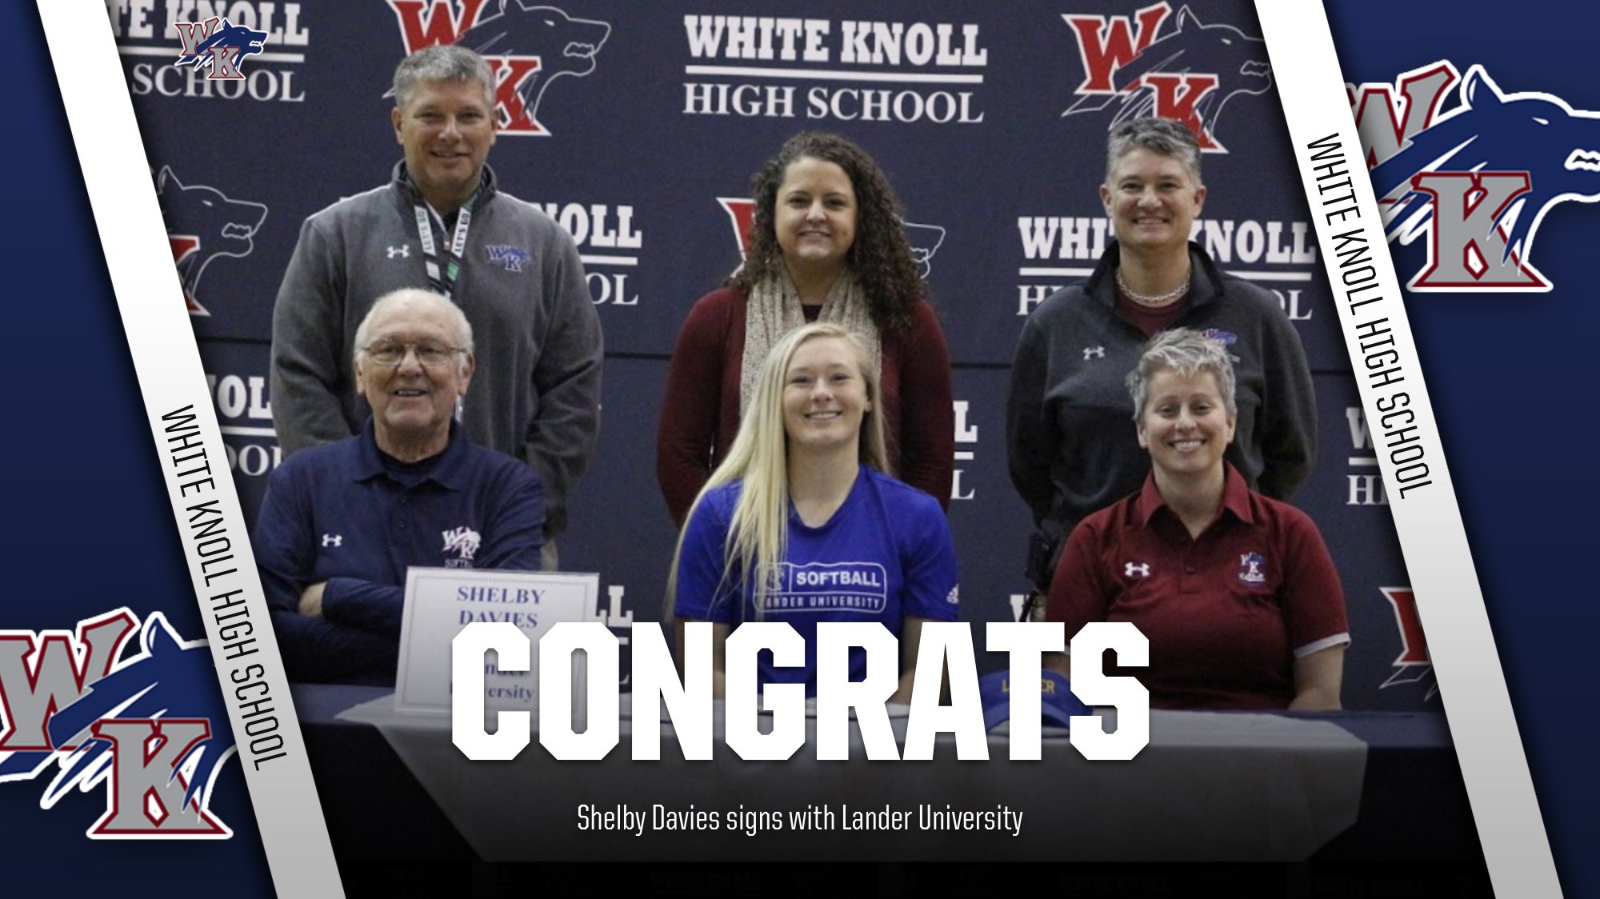 Shelby Davies signs with Lander University!